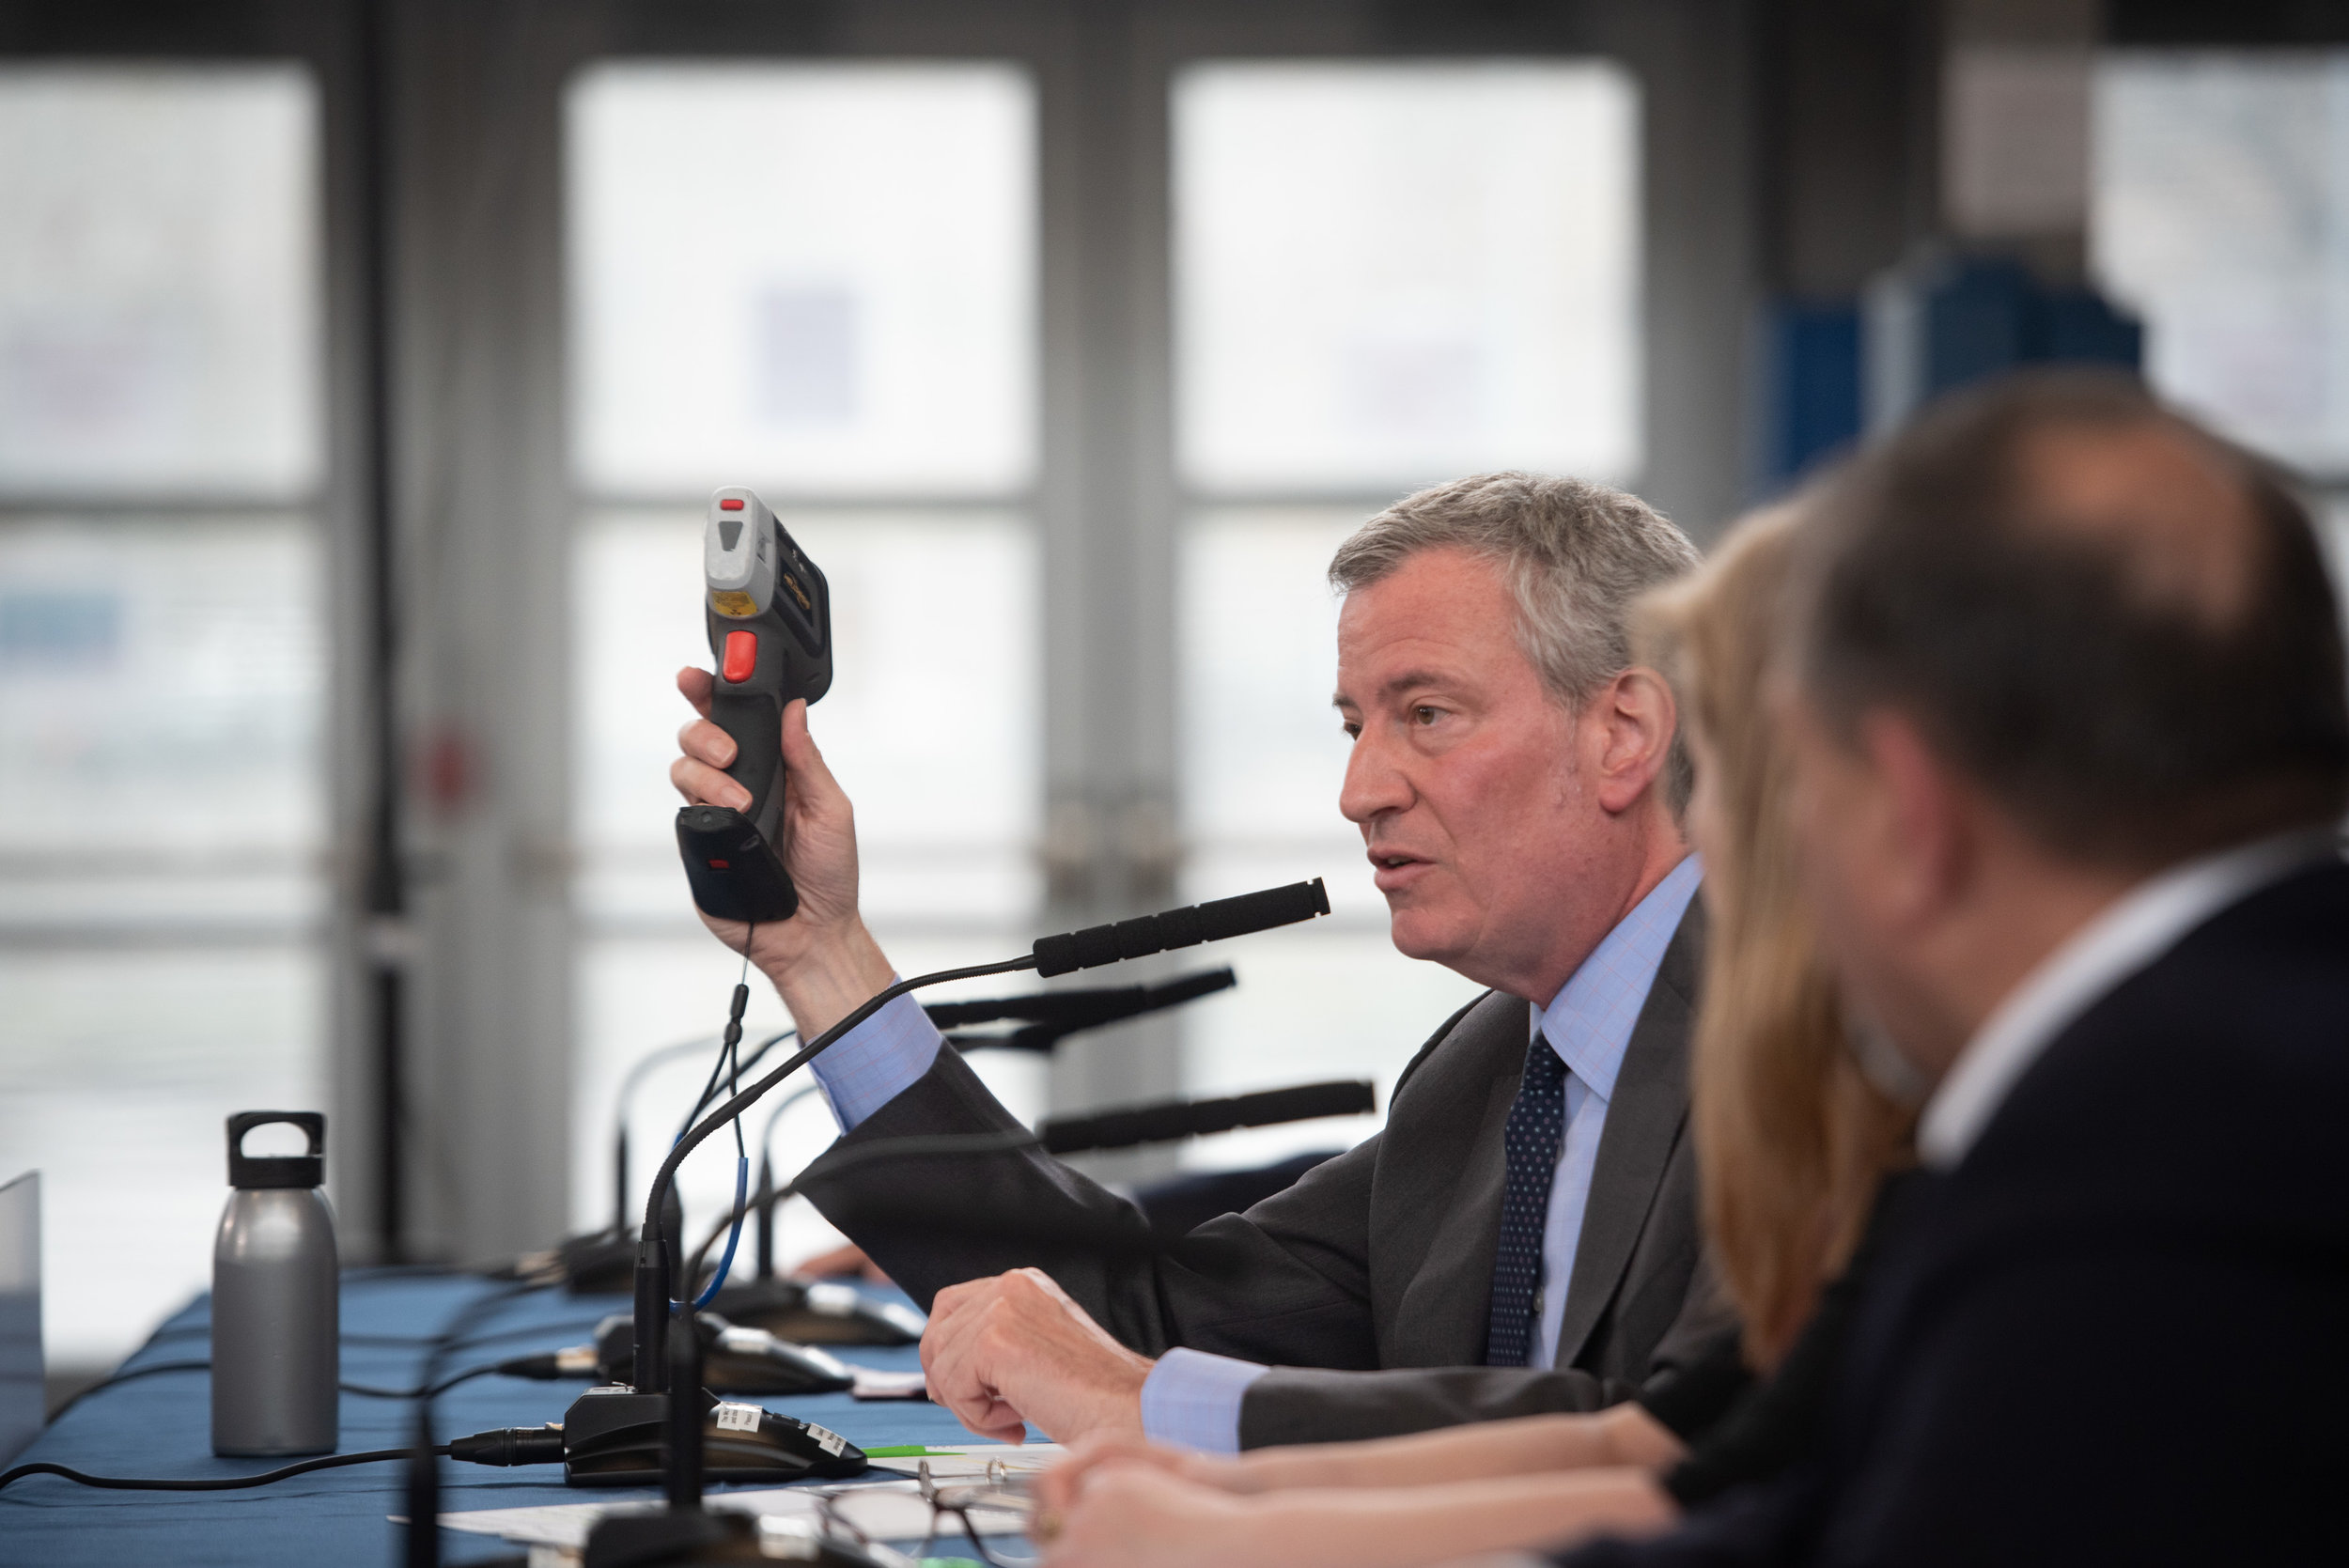 Mayor Bill de Blasio holds a portable x-ray fluorescence analyzer used to test for lead-based paint as he announces a plan to test at 135,000 nycha apartments in April. Photo by Michael Appleton/Mayoral photography